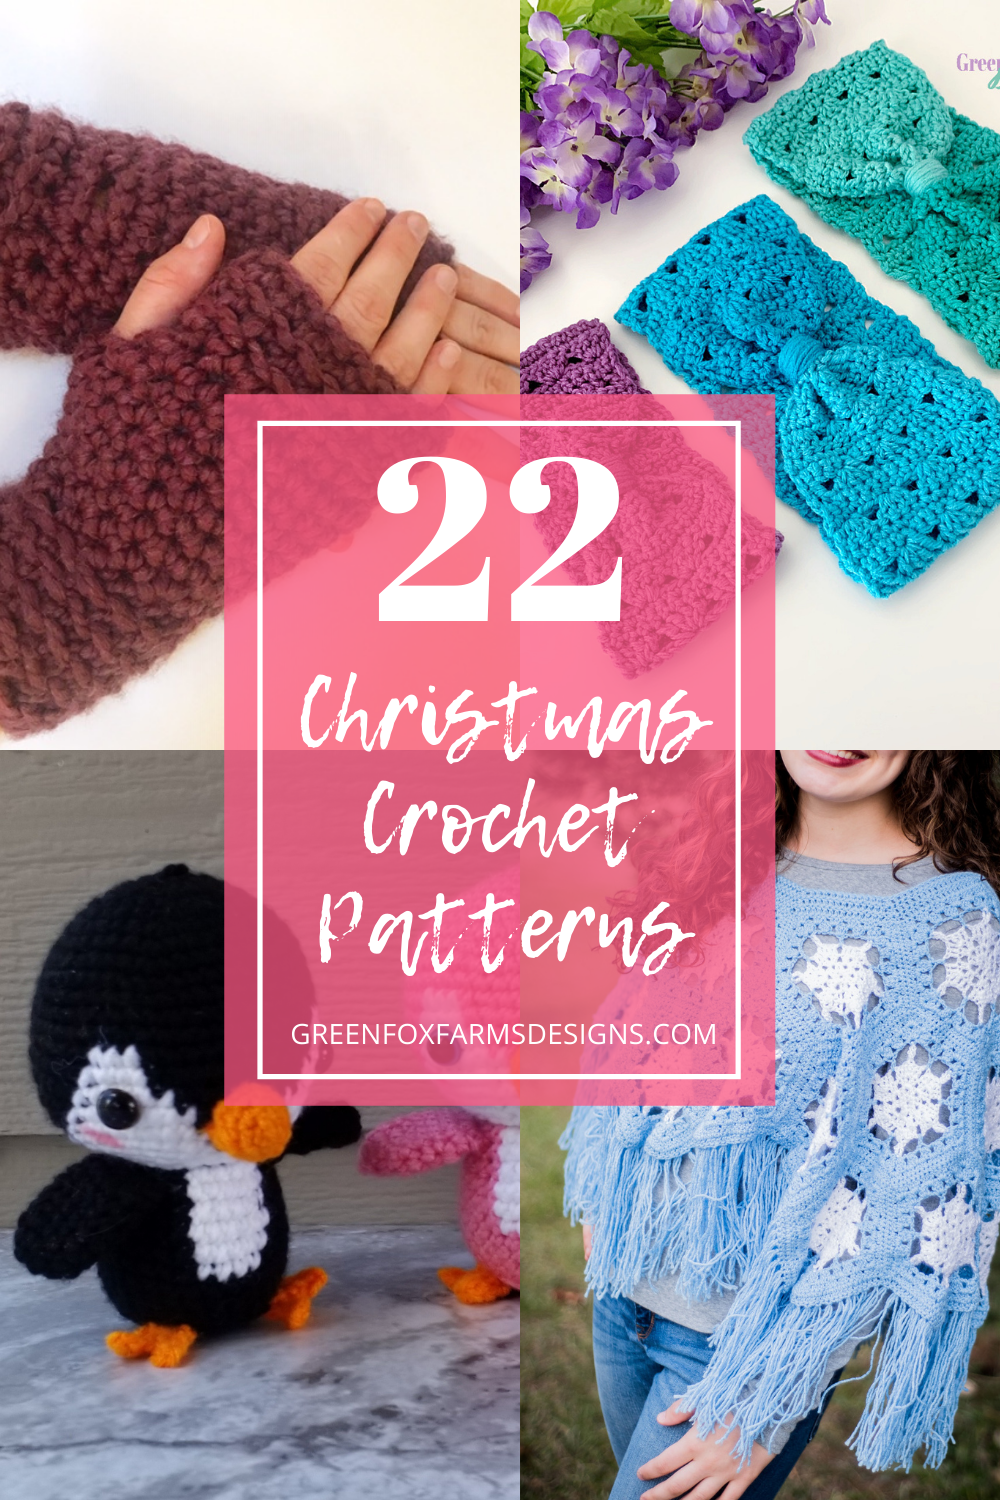 22 Crochet Patterns for Christmas! A gorgeous collection of Crochet Patterns from various designers. Crochet a Snowball Fight, Crochet Poncho, Fingerless Gloves, a Textured Beanie and more! greenfoxfarmsdesigns.com